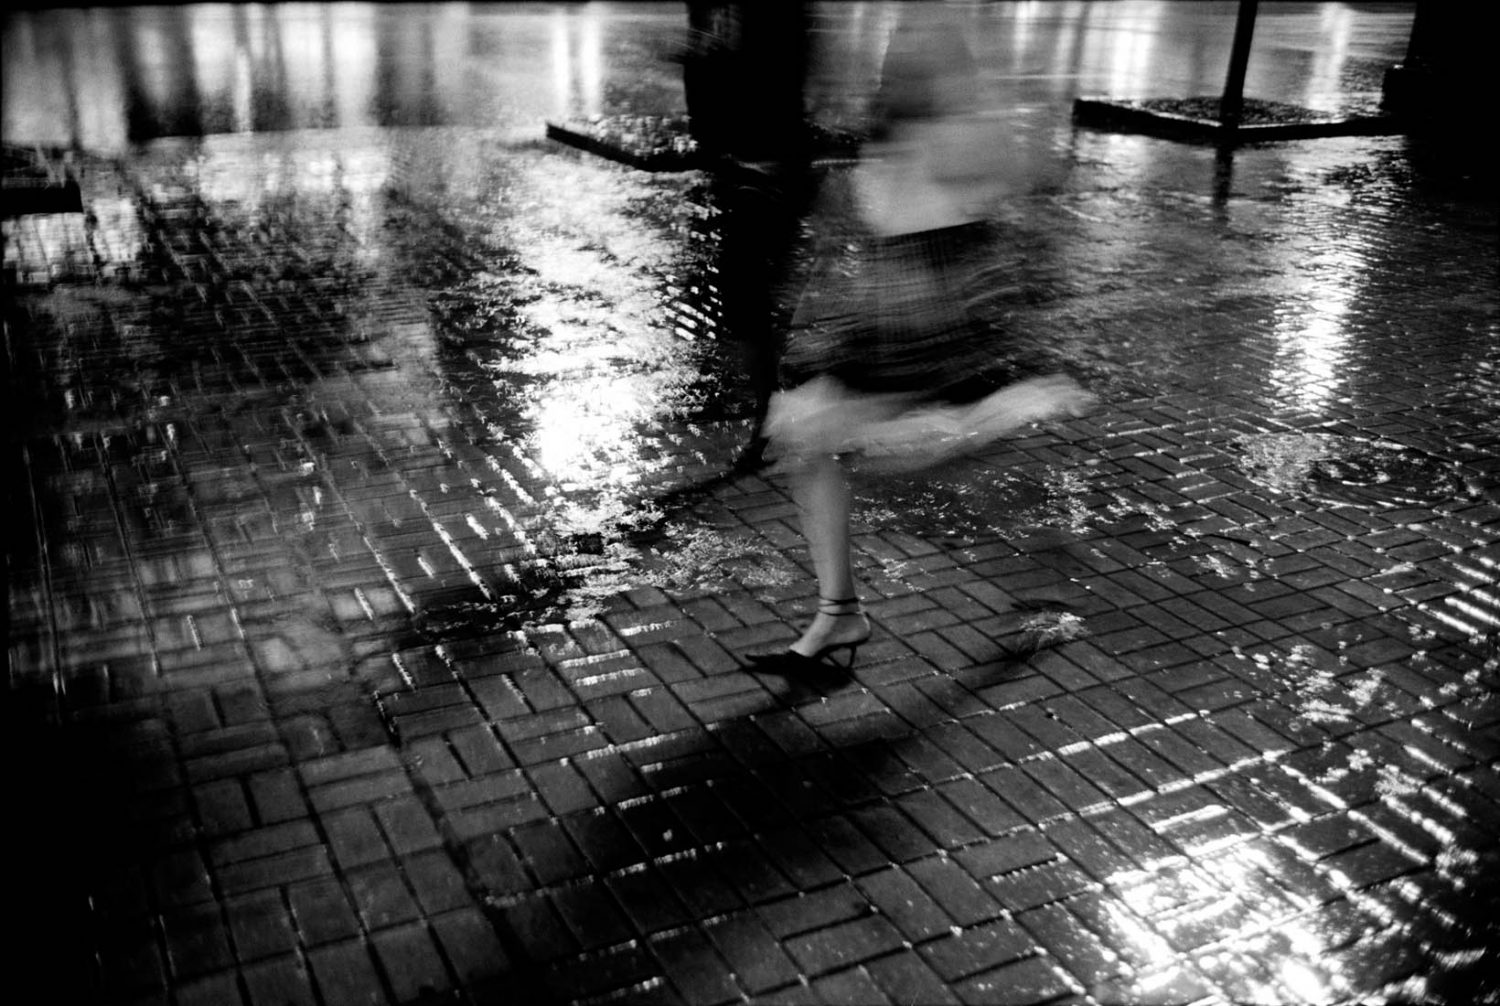 Ukraine Kiev, 27-08-2006 Beautiful en elegant woman legs on high heels in the rain PHOTO AND COPYRIGHT ROGER CREMERS